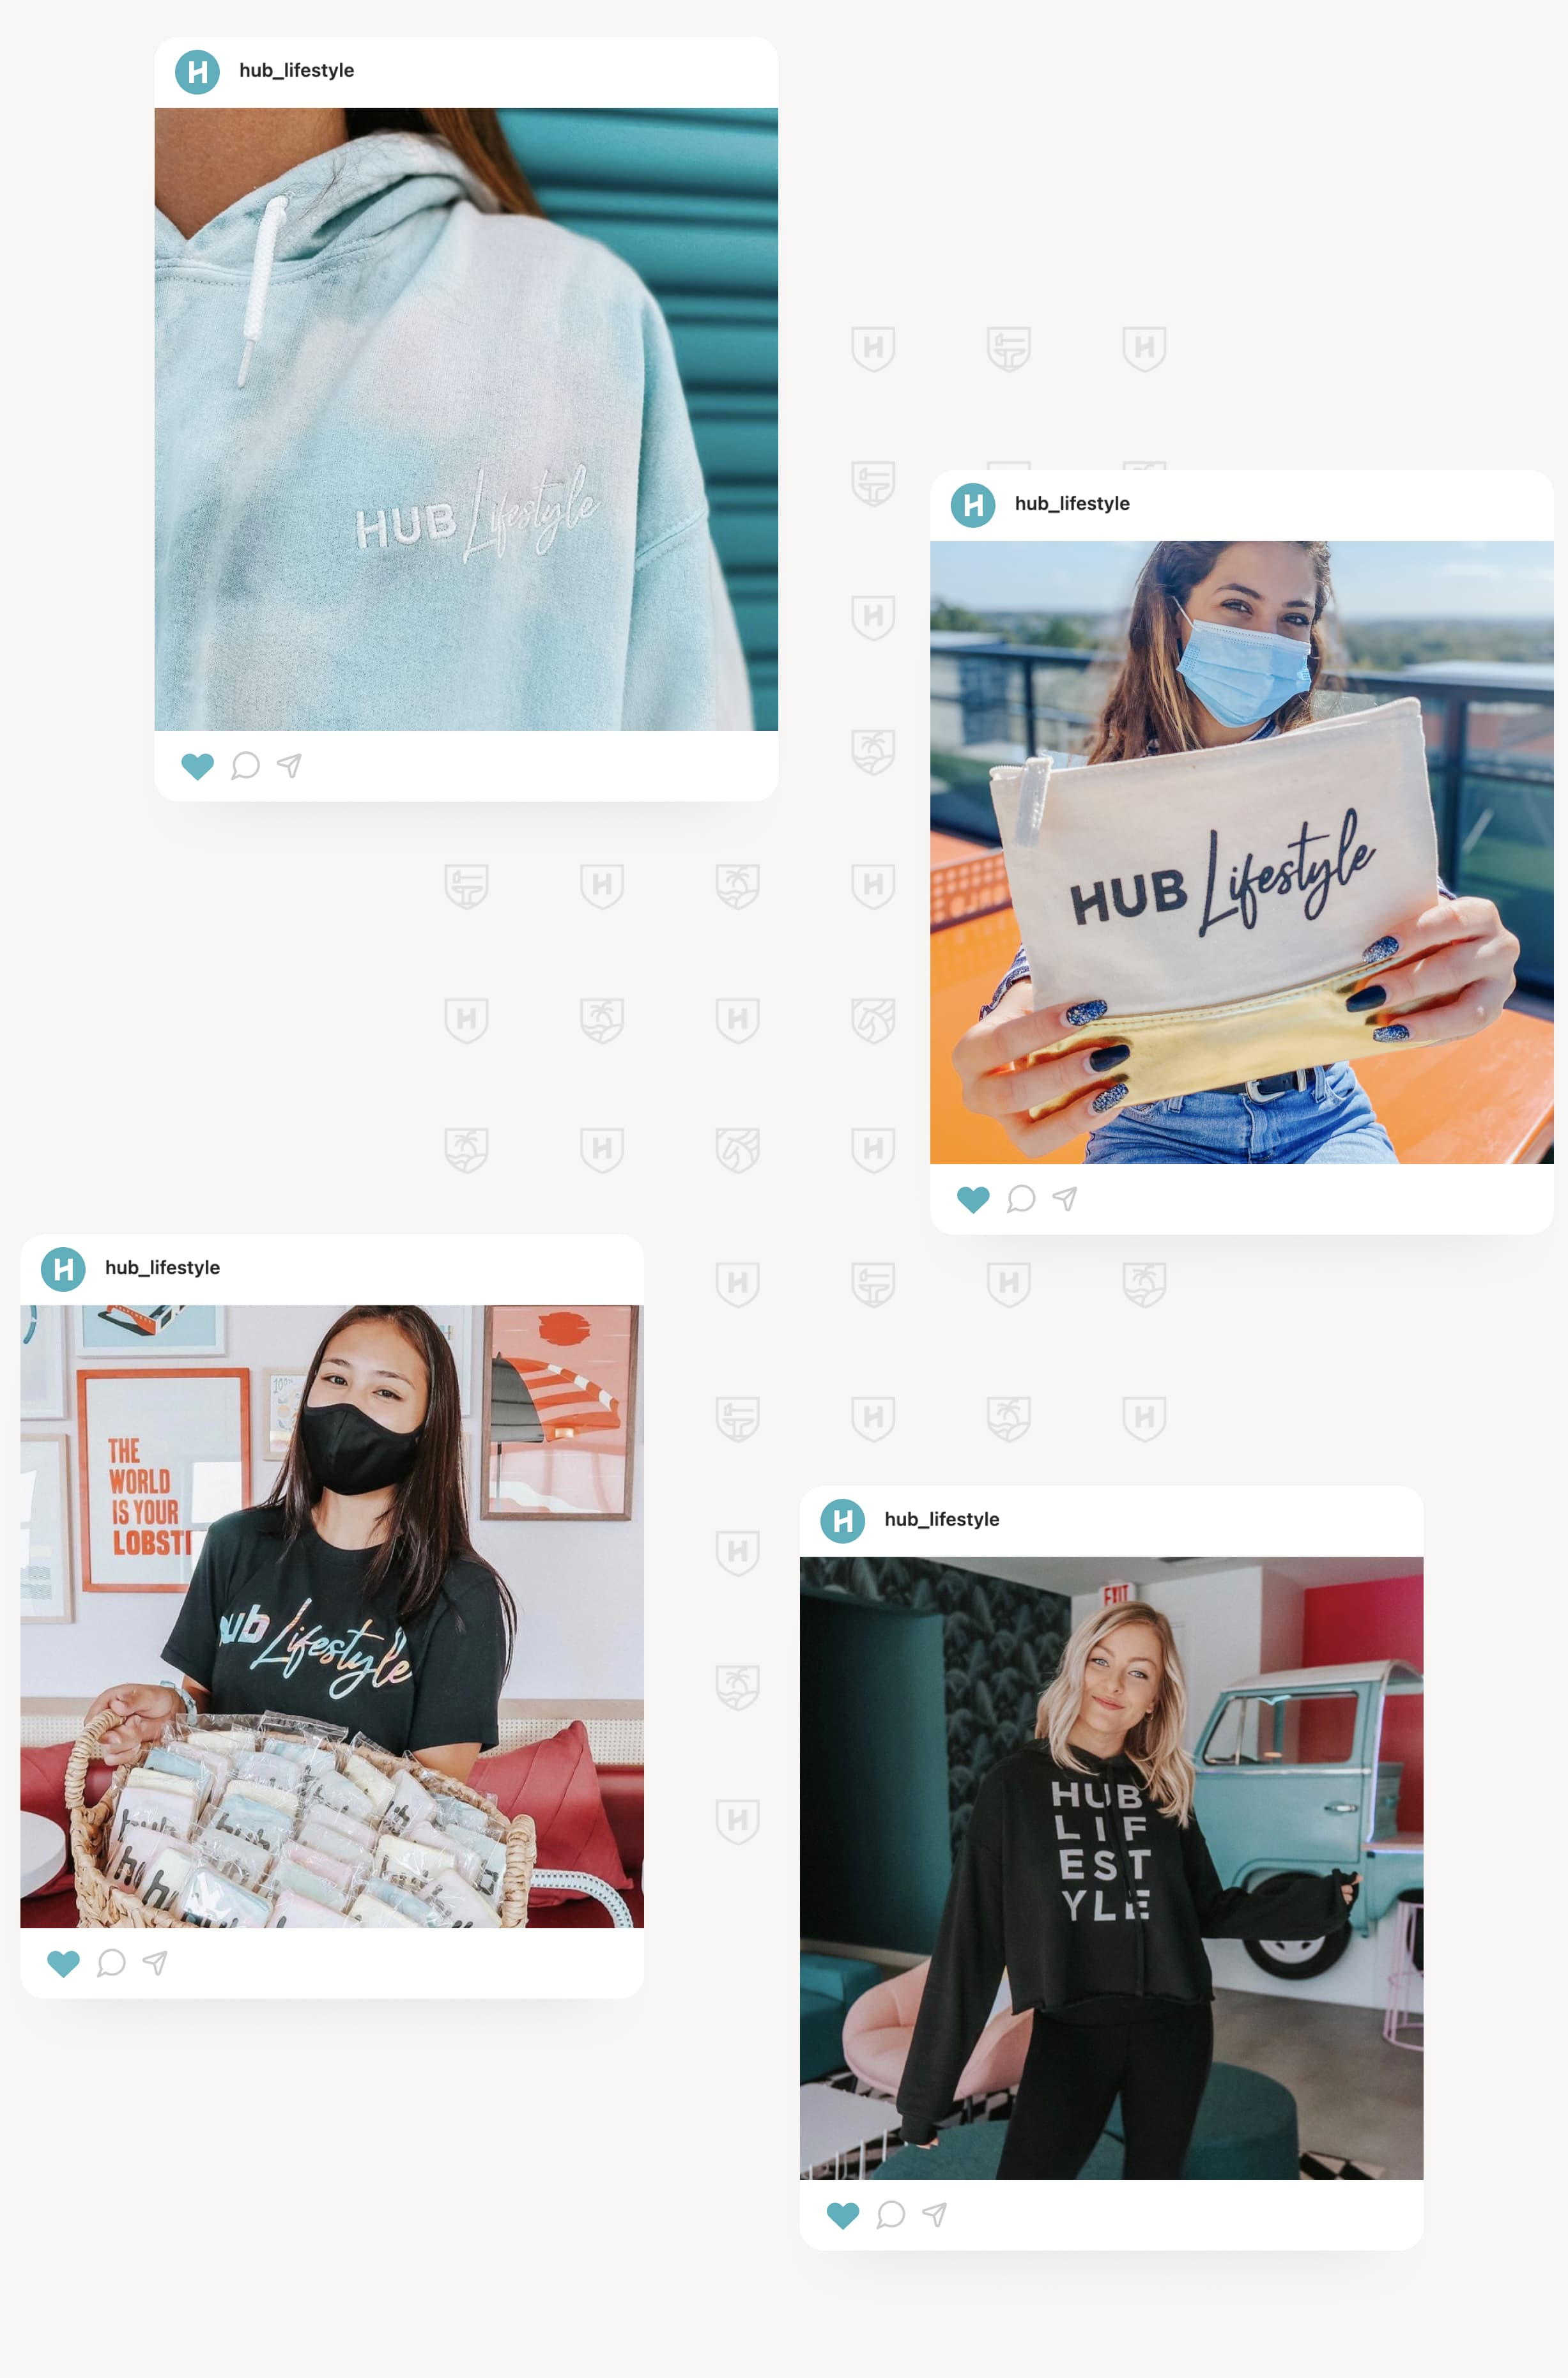 Four images of Instagram stories designed with the new Hub Lifestyle branding.